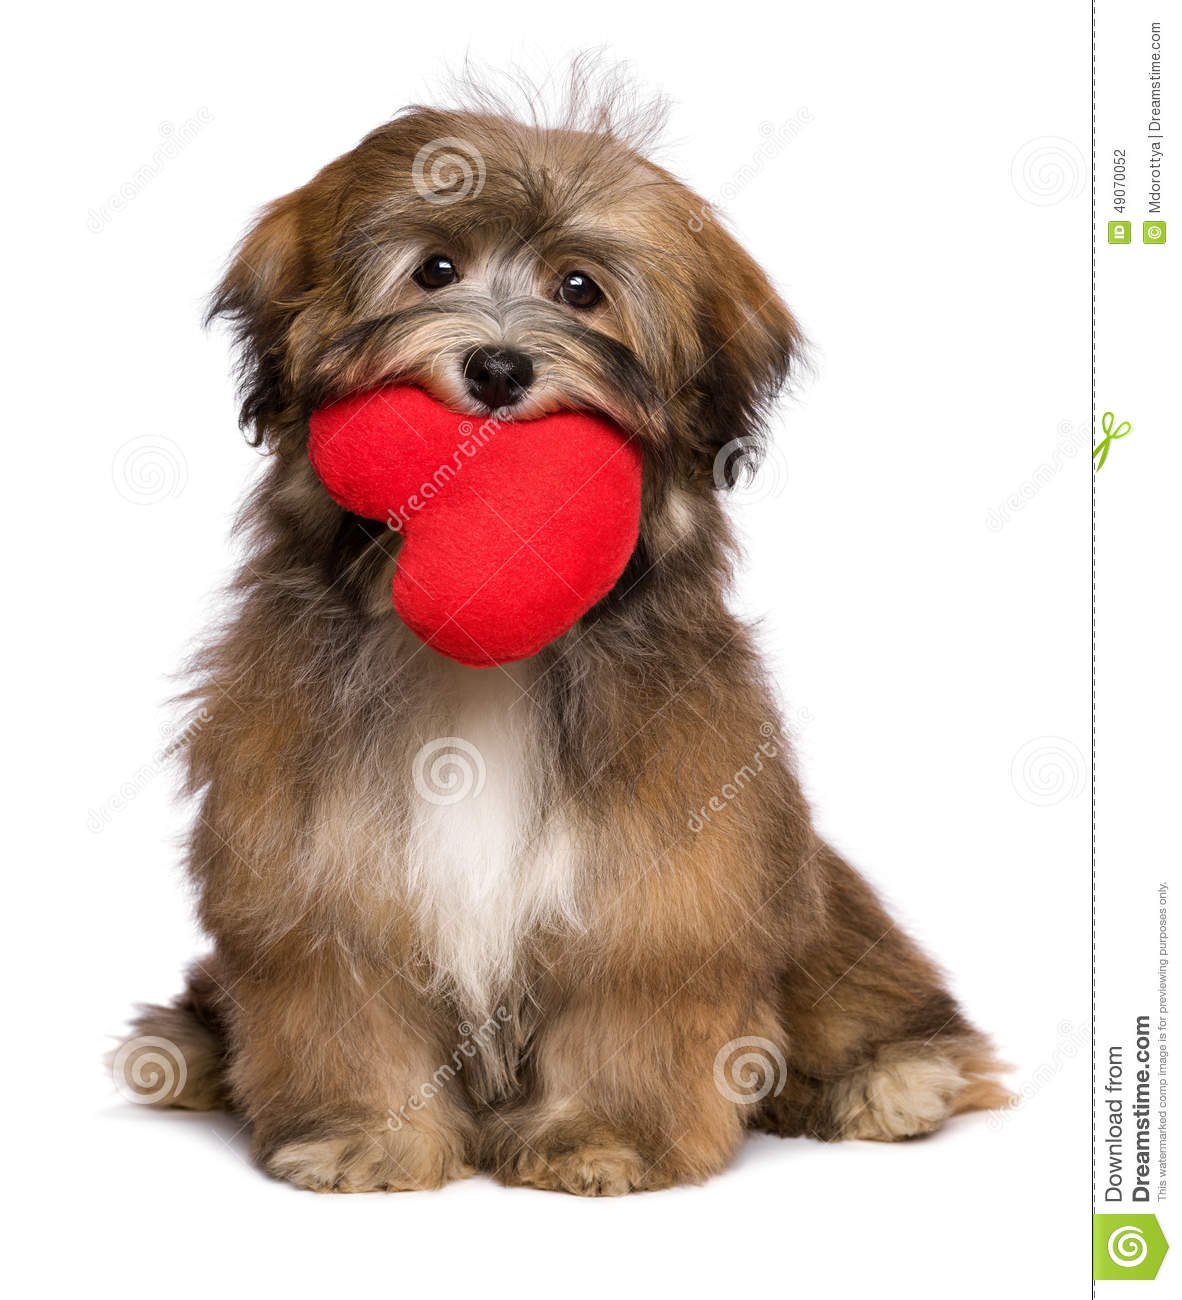 Cute Shih Tzu Puppies Wallpaper Lover Havanese Puppy Dog Is Holding A Red Heart In Her